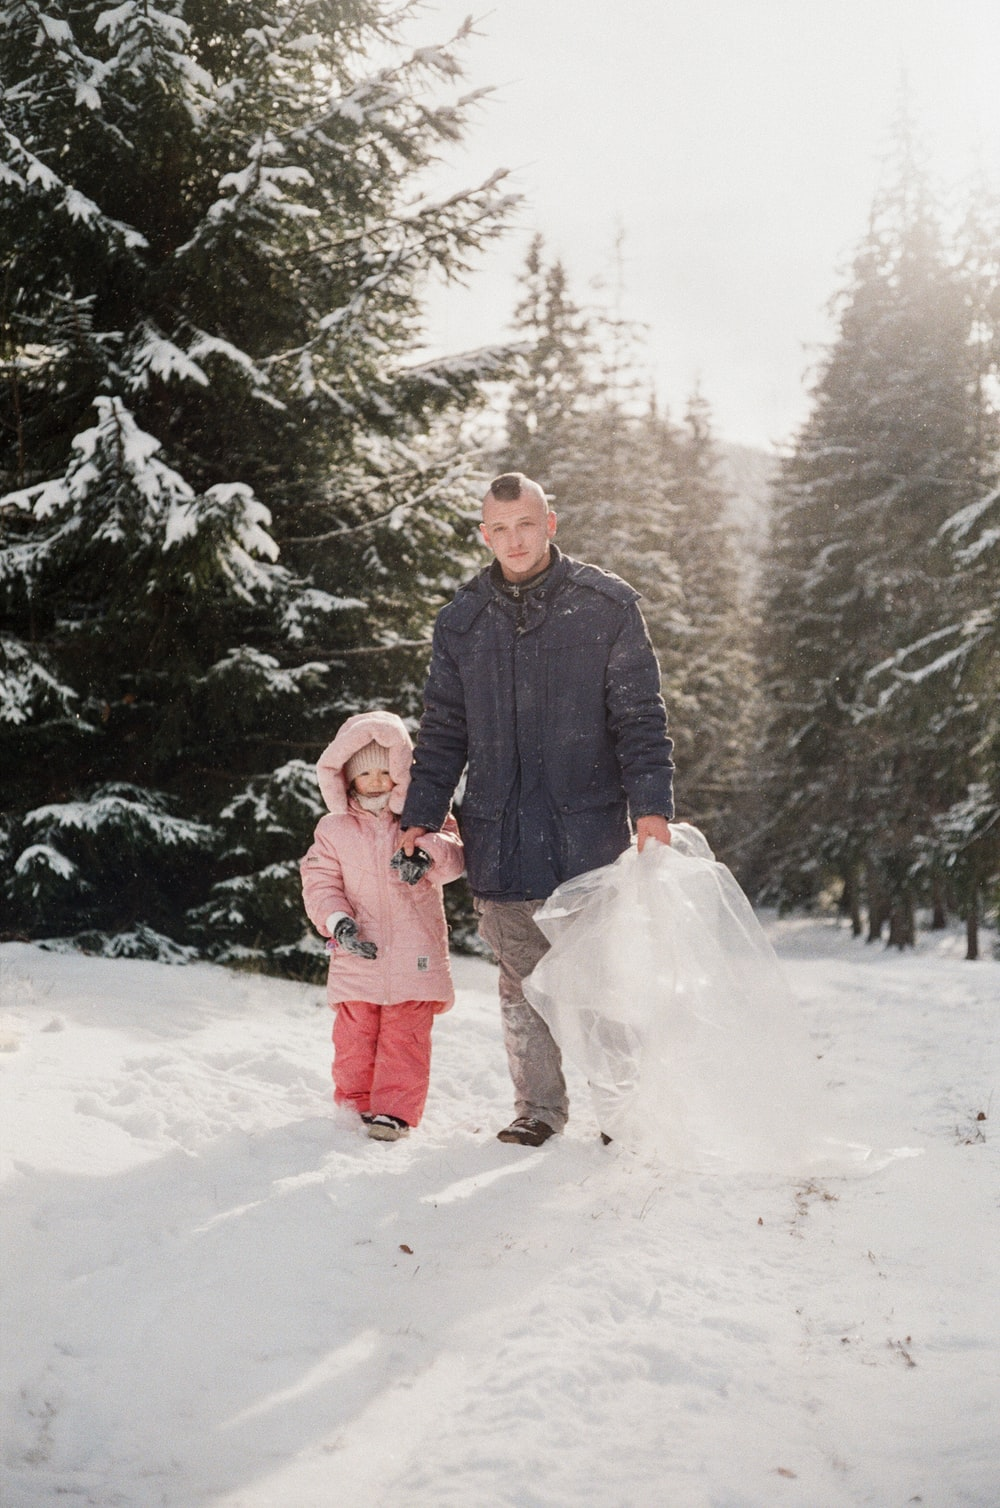 man in black jacket holding girl in pink coat on snow covered ground during daytime